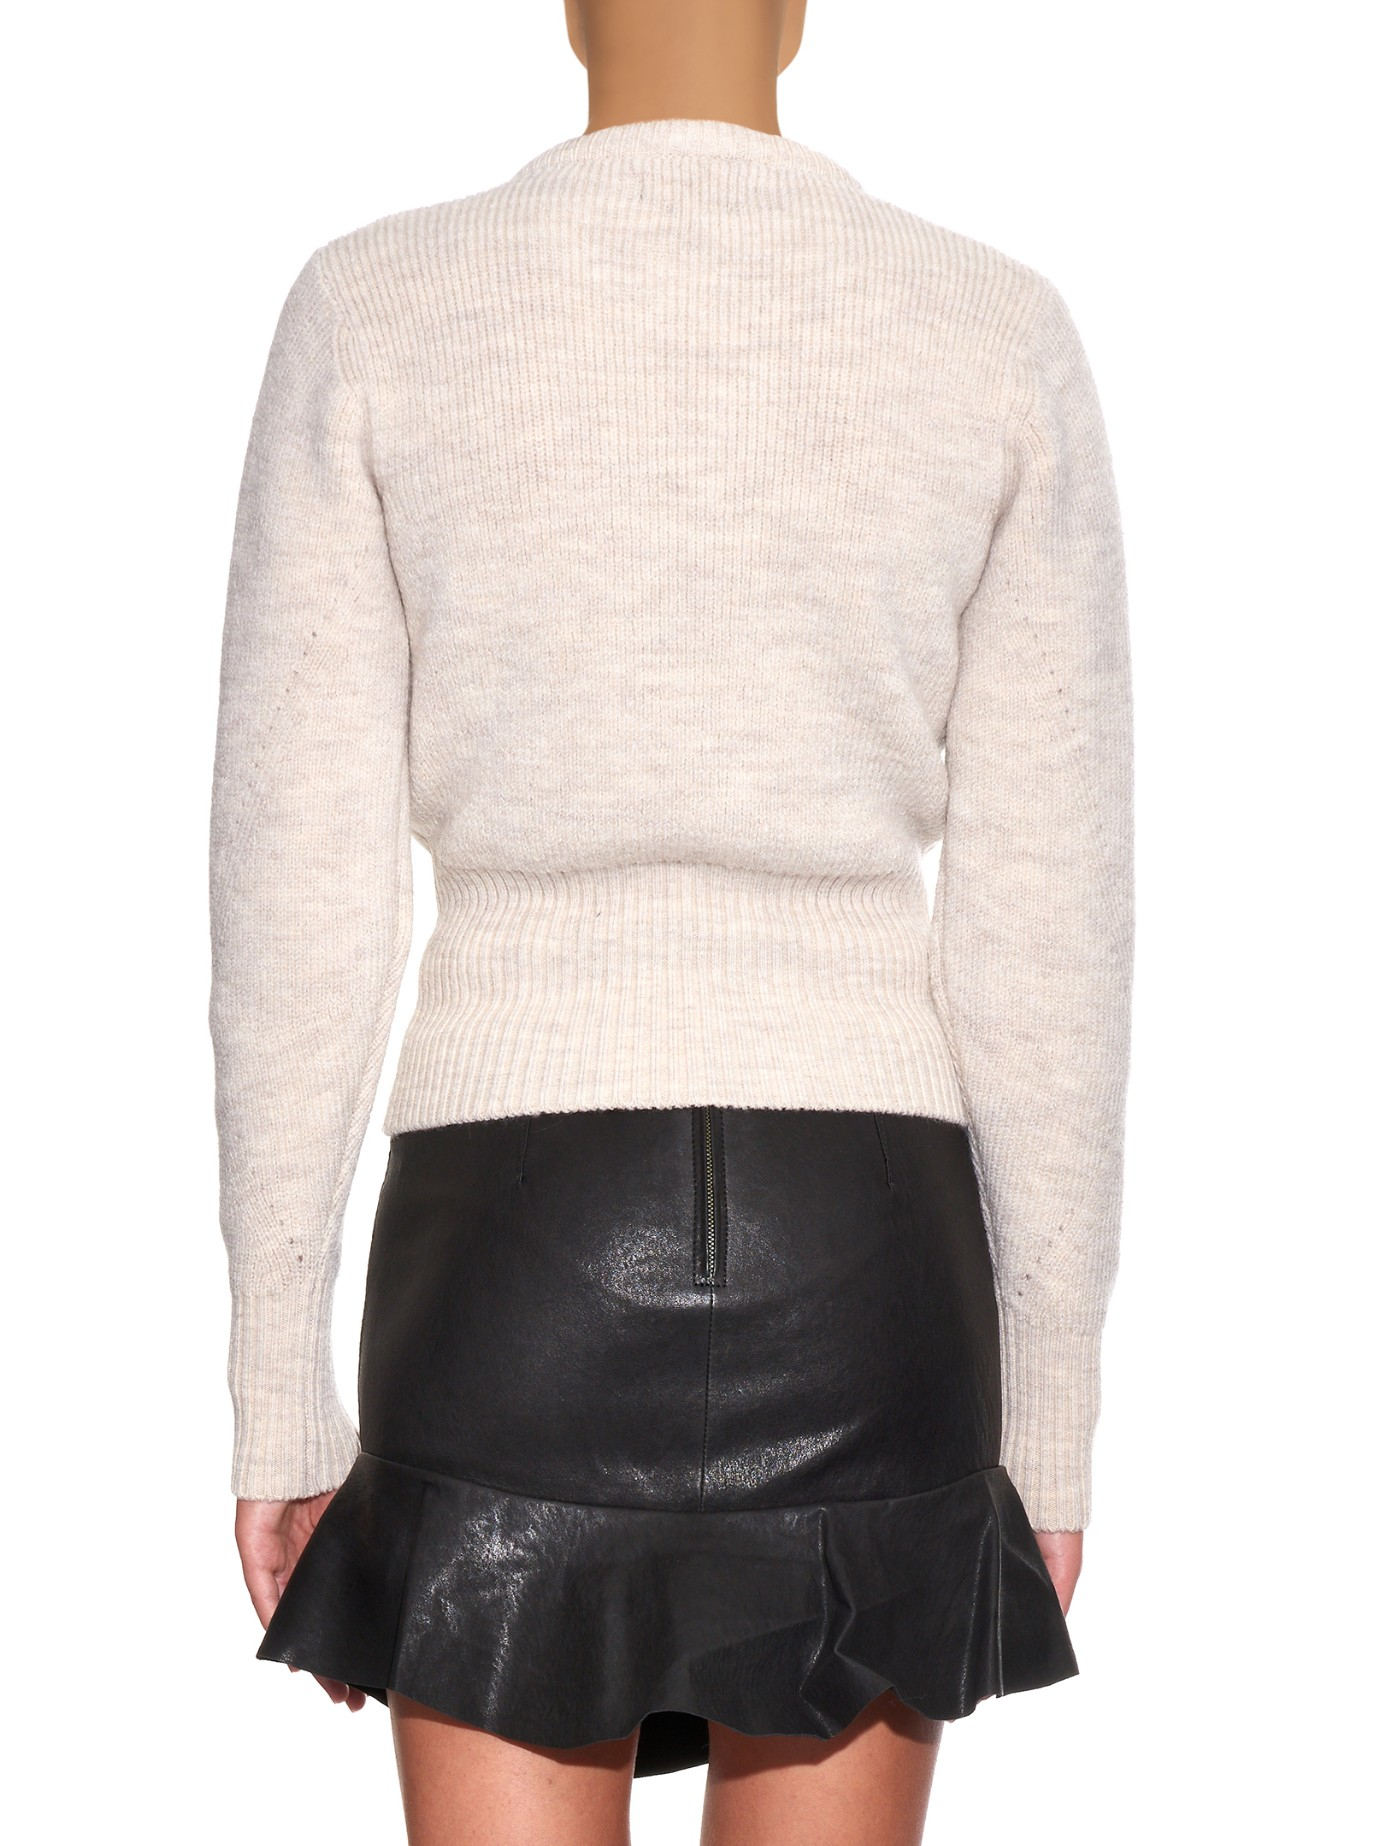 15829201f2 Lyst - Isabel Marant Charley Lace-up Wool-blend Sweater in White